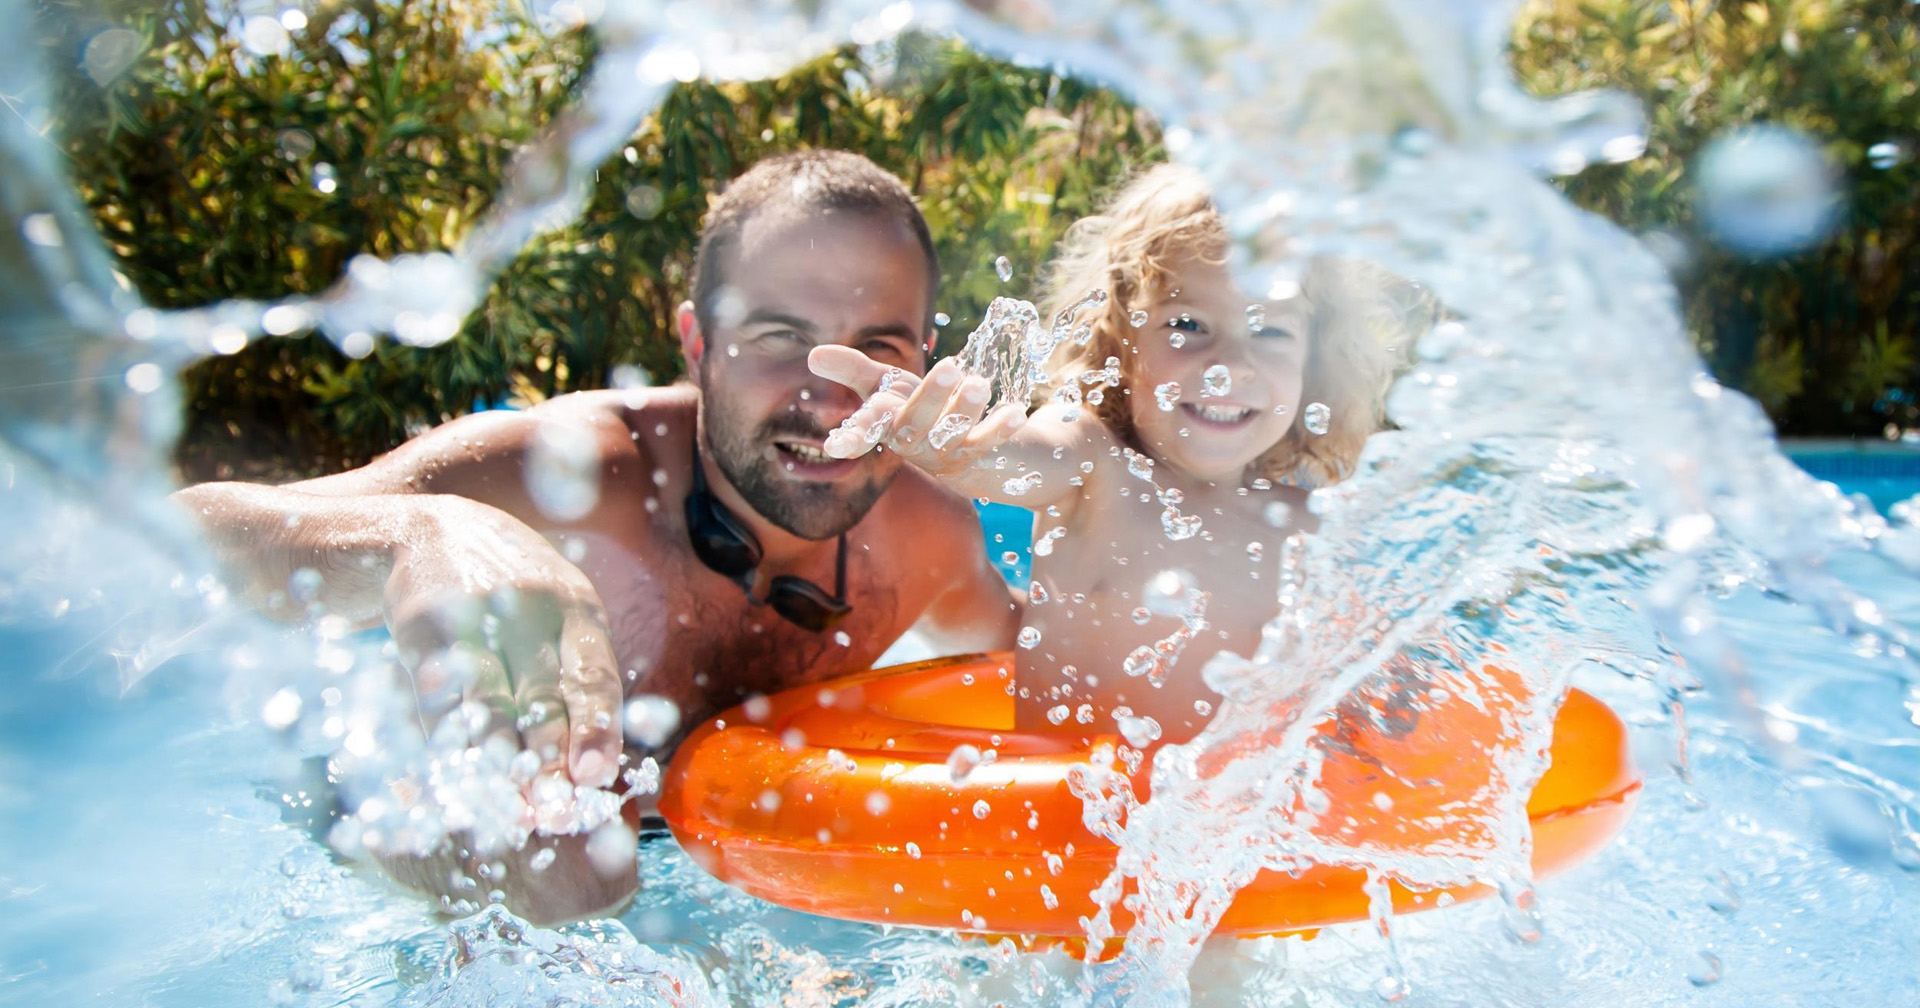 Global Resort Homes' Orlando Vacation Rentals Are Family Friendly